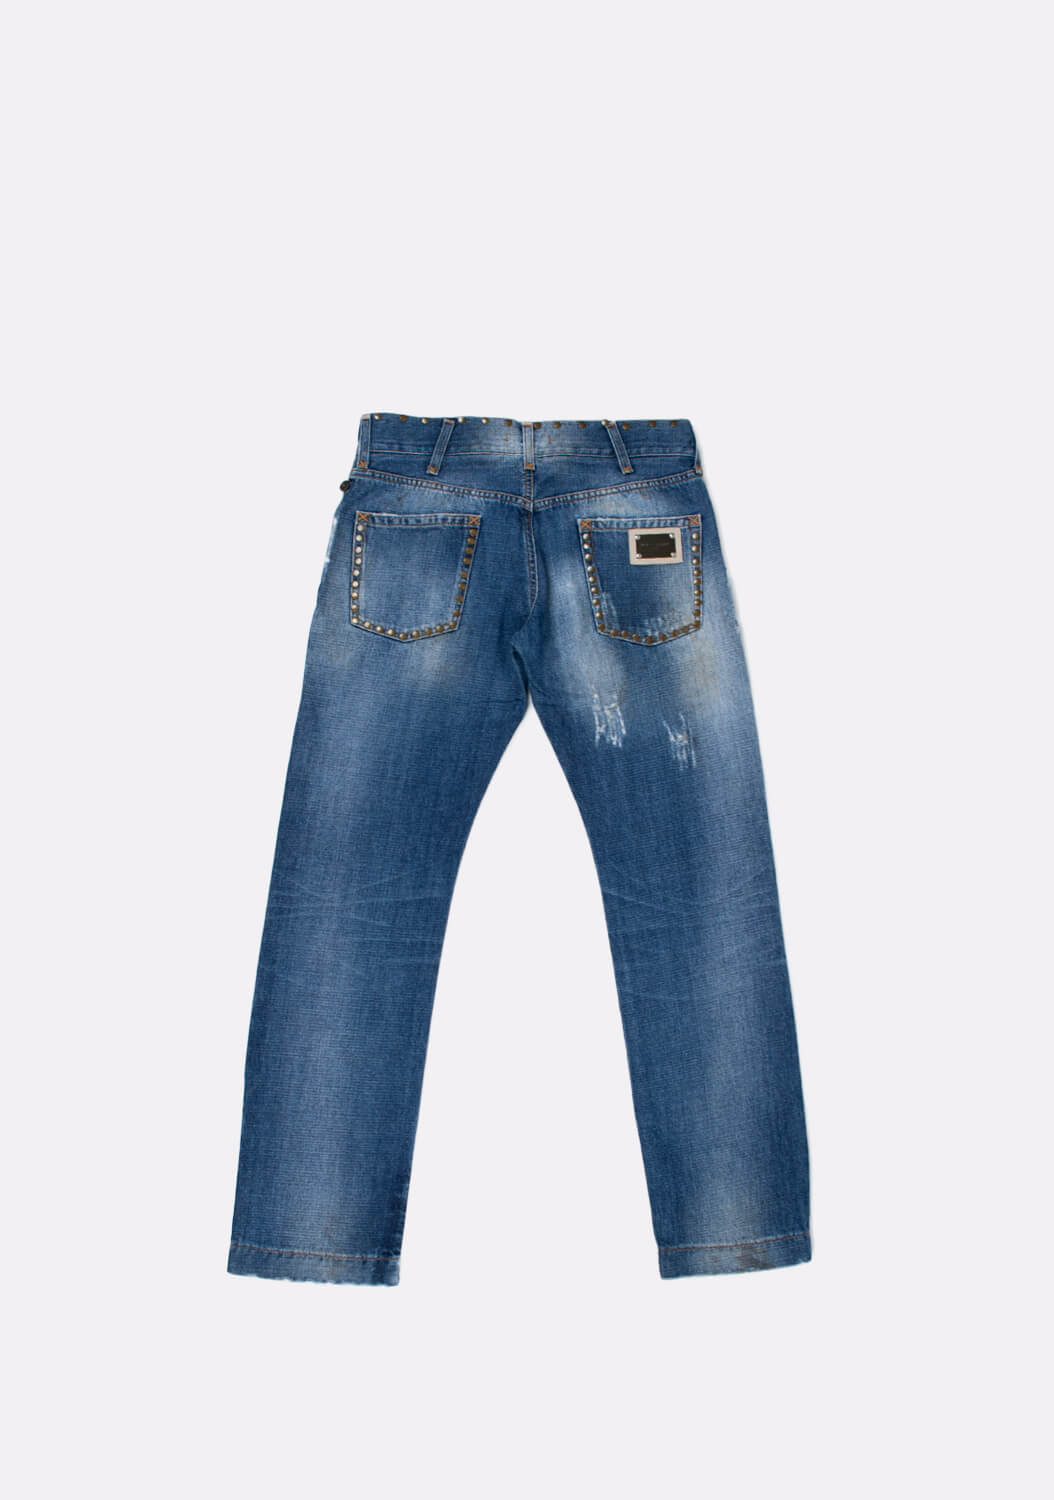 dolce-gabbana-distressed-dzinsai-1